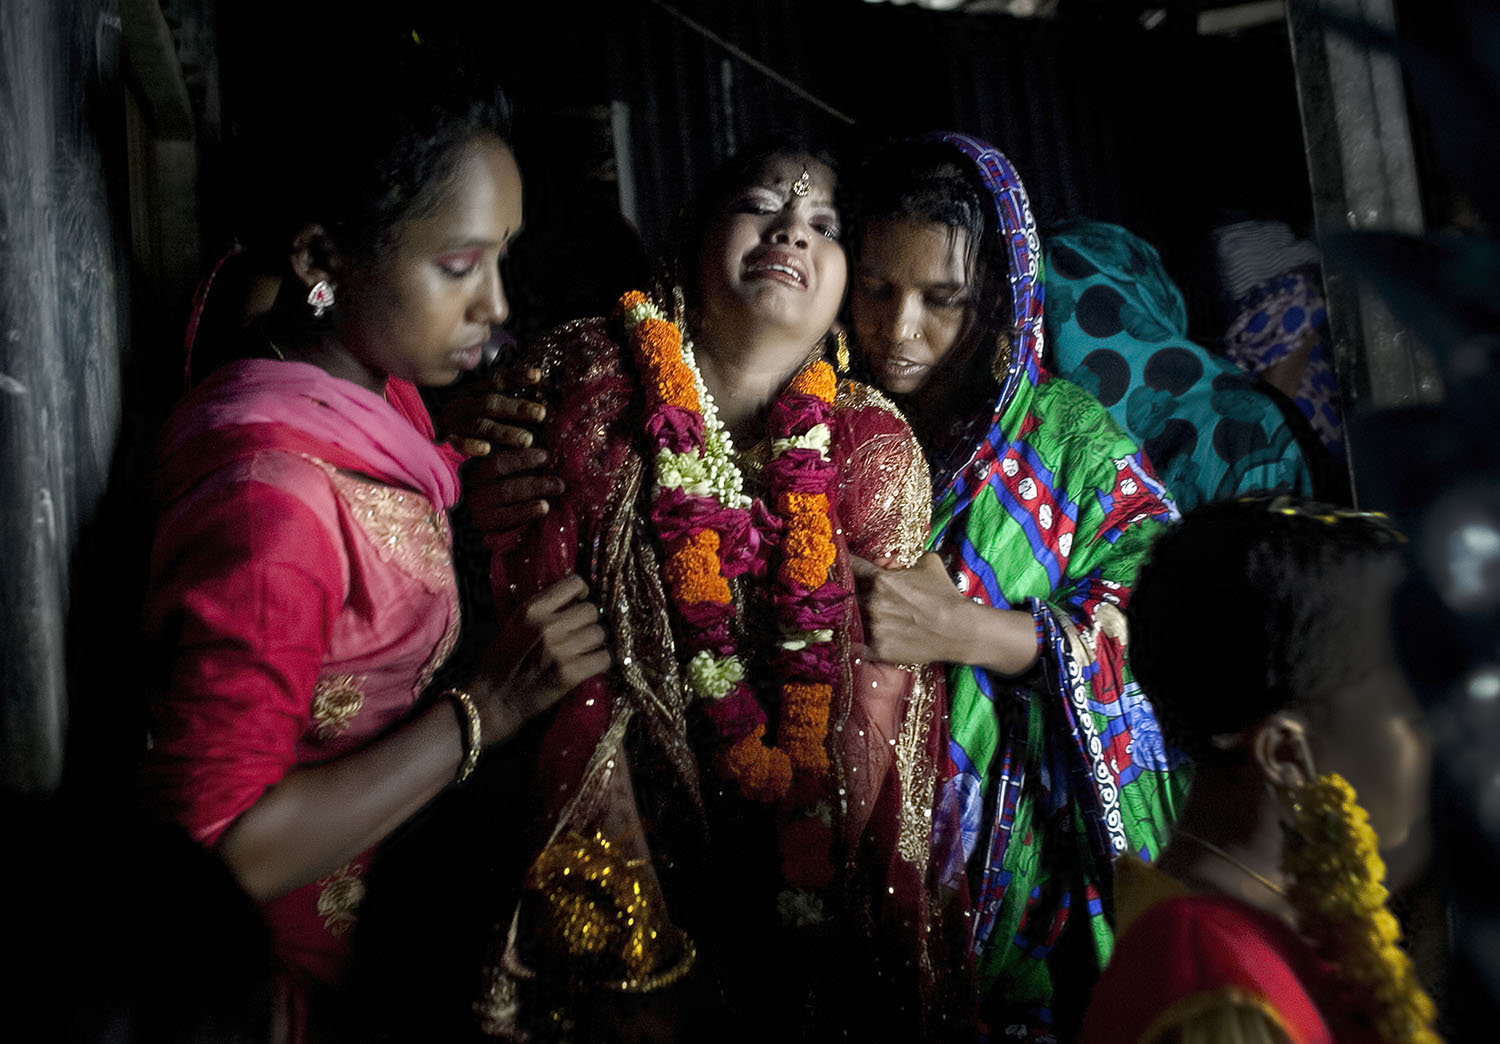 13 year old Runa Akhter cries as she is led to her new husband, the day of her wedding to a 29 year old man